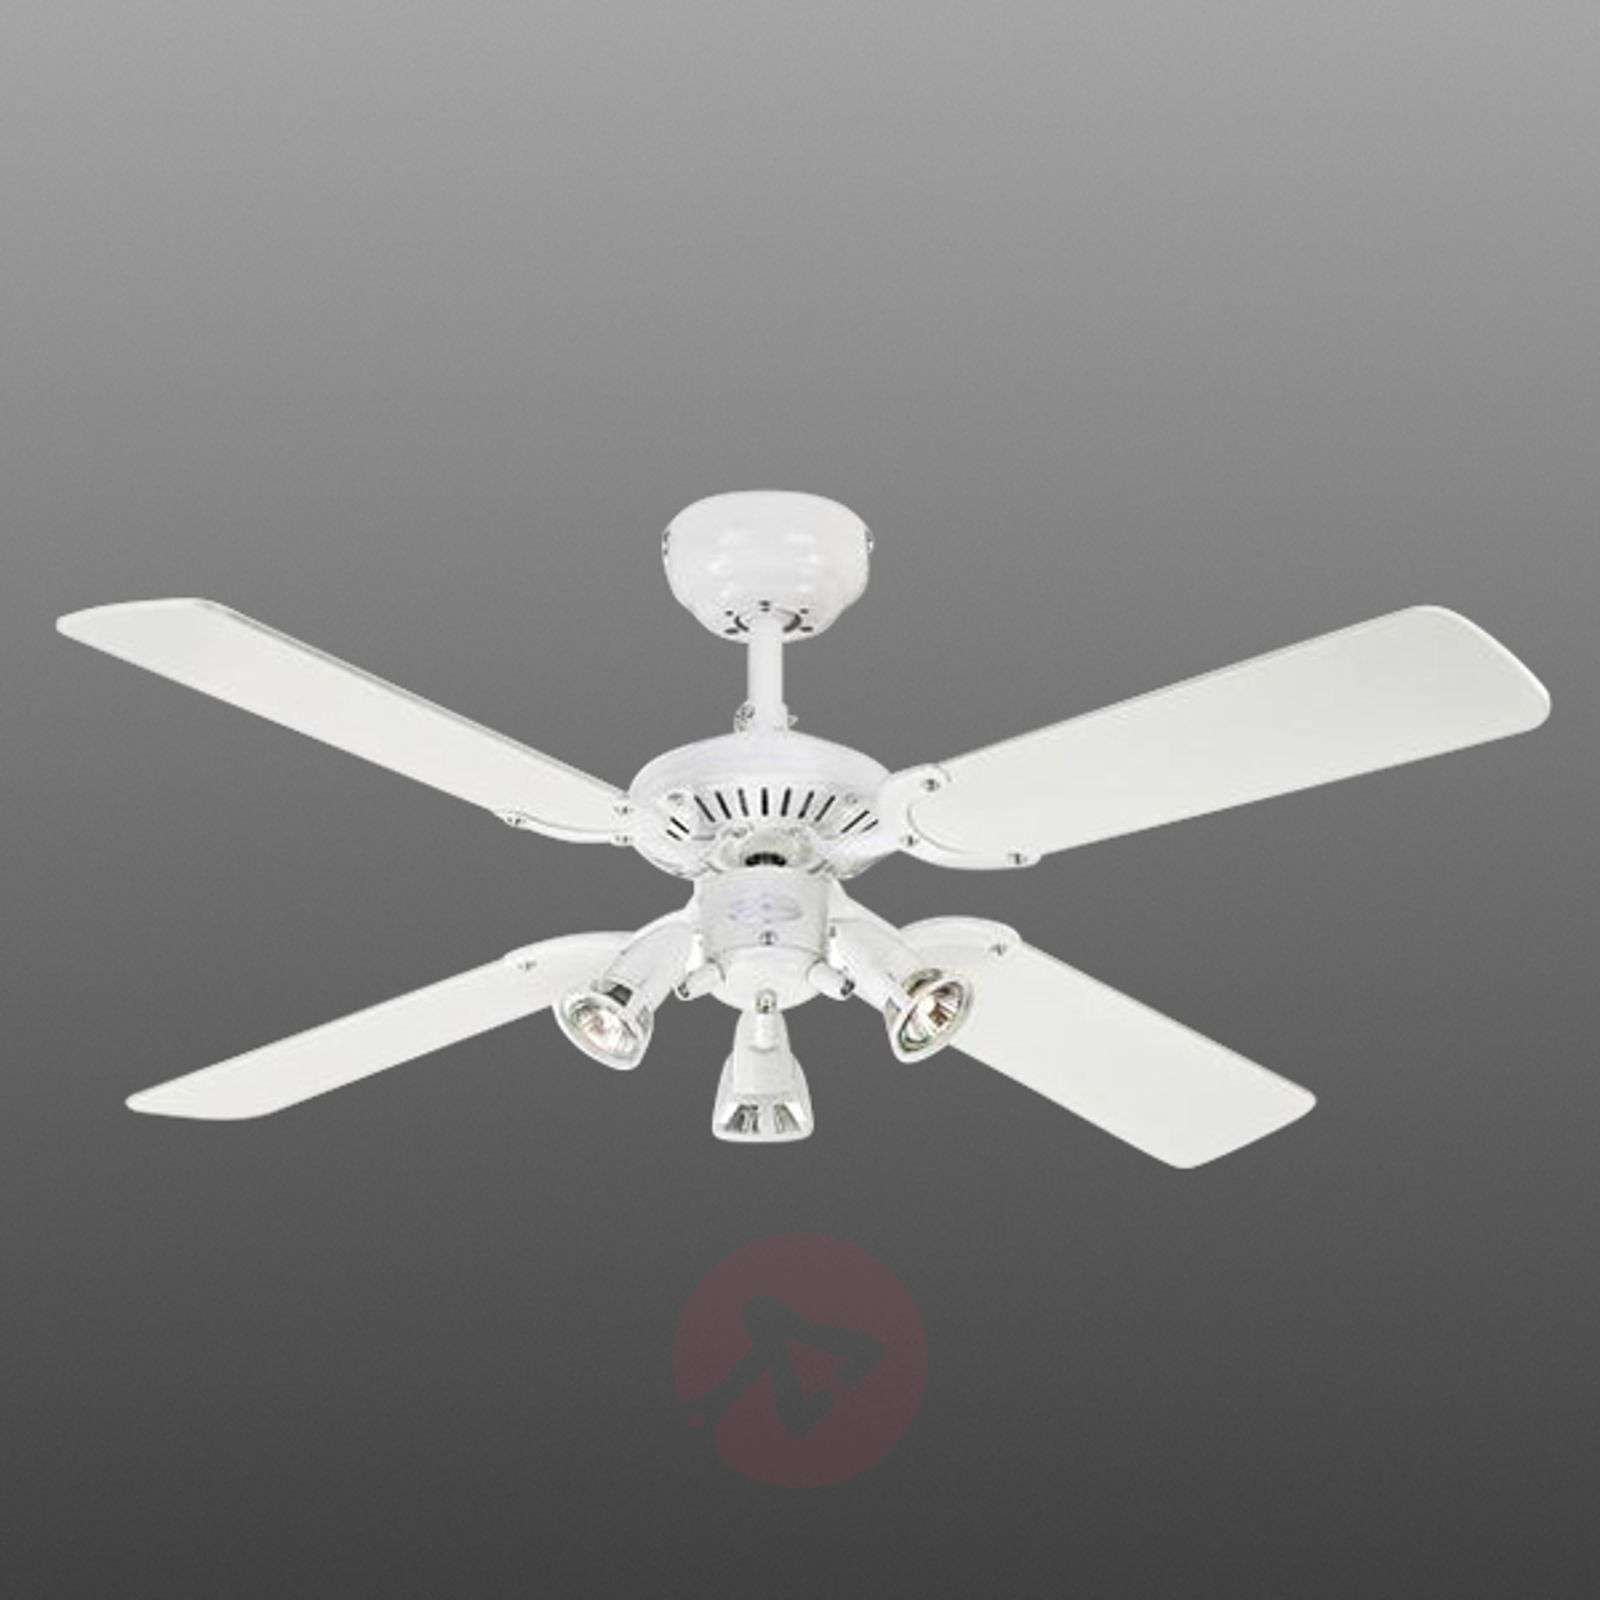 Ceiling fan Princess Euro with 3 bulbs-9602279-01